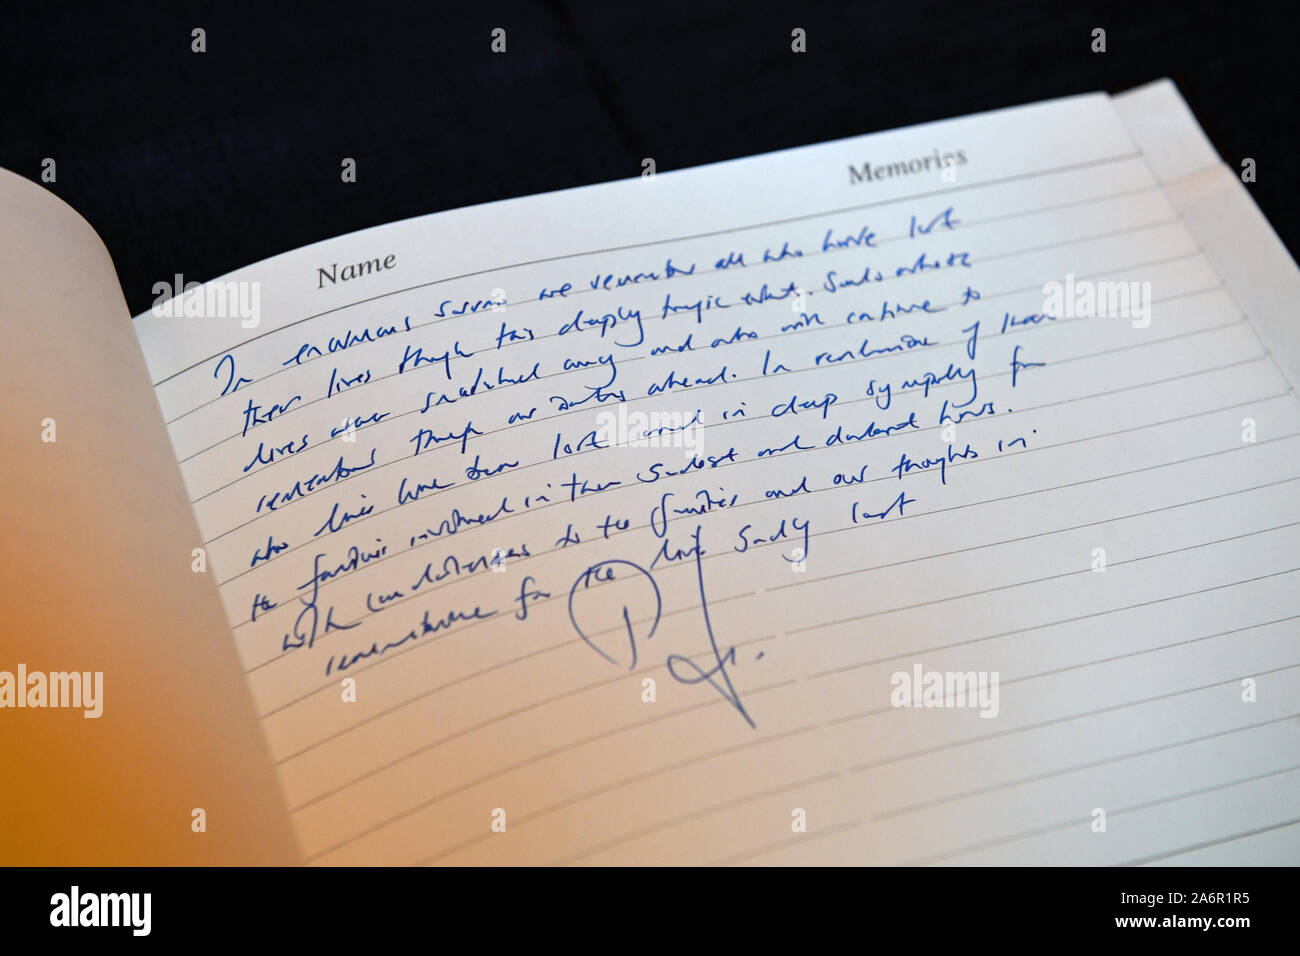 A message left by Home Secretary Priti Patel in the book of condolence during a visit to Thurrock Council Offices in Essex after the bodies of 39 people were found in a lorry container last week. Stock Photo